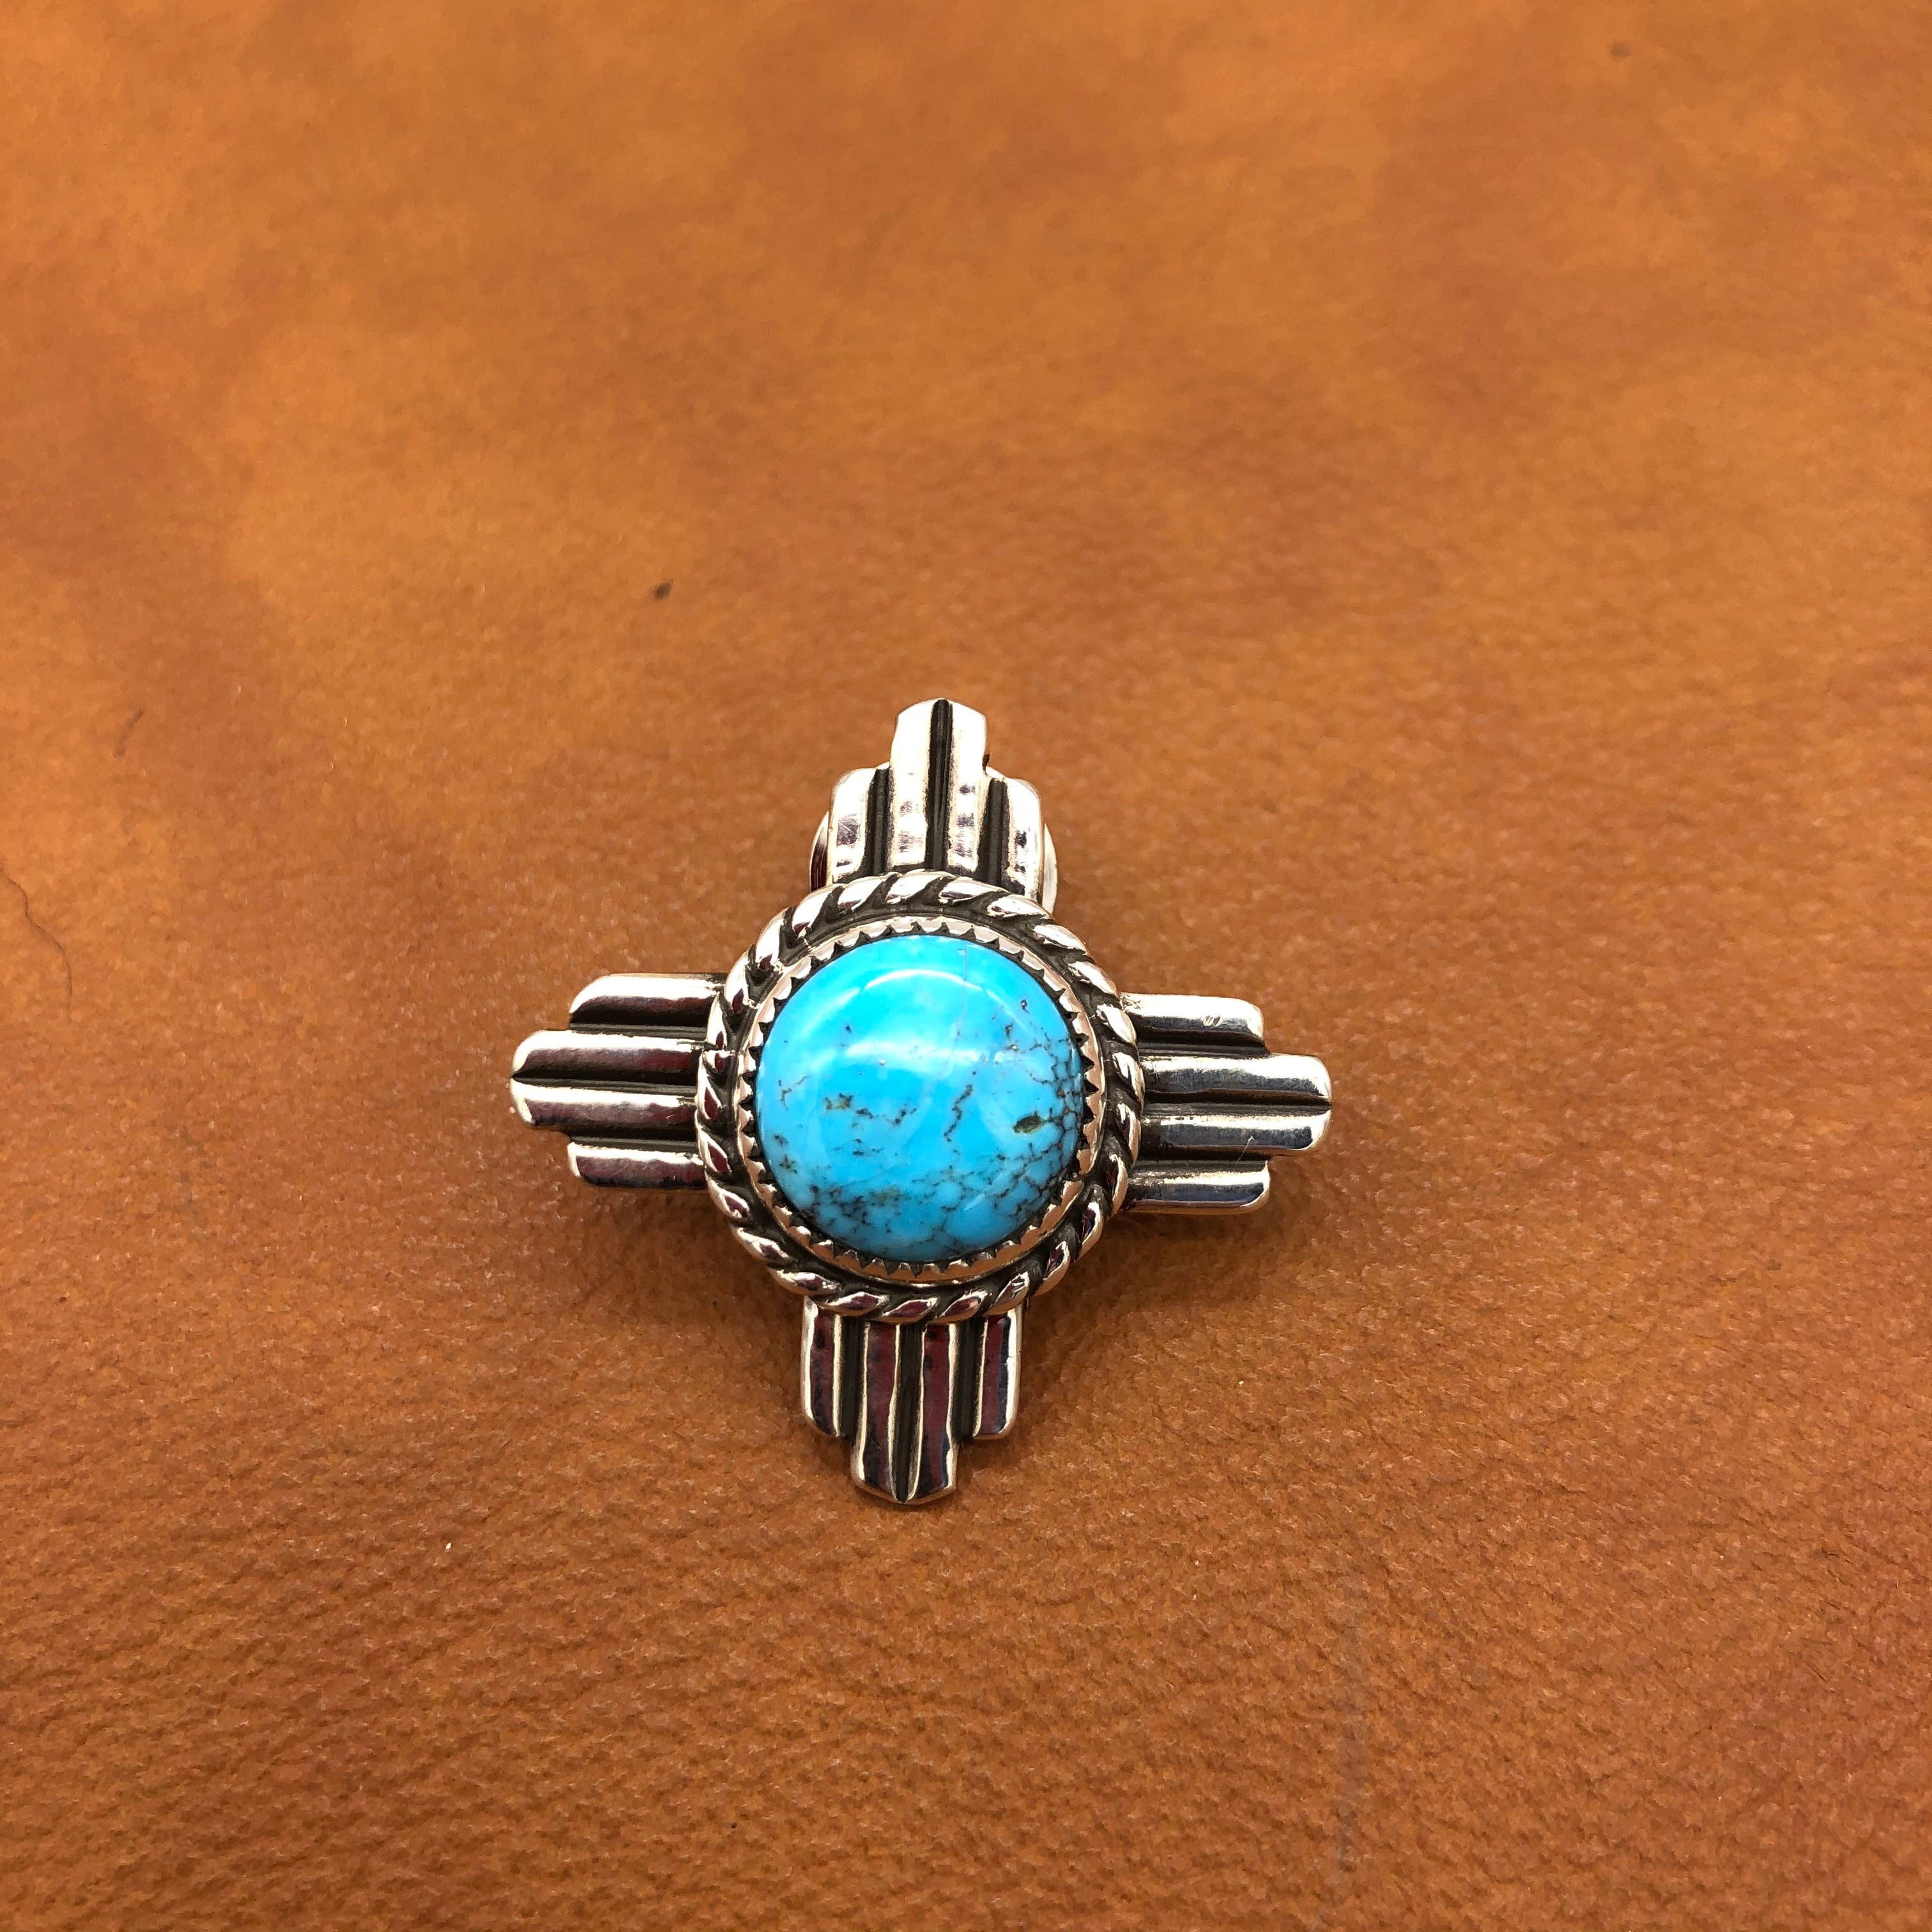 SALE on In STOCK ONLY Mayor Tim Keller's Zia Turquoise Lapel Pin PZ